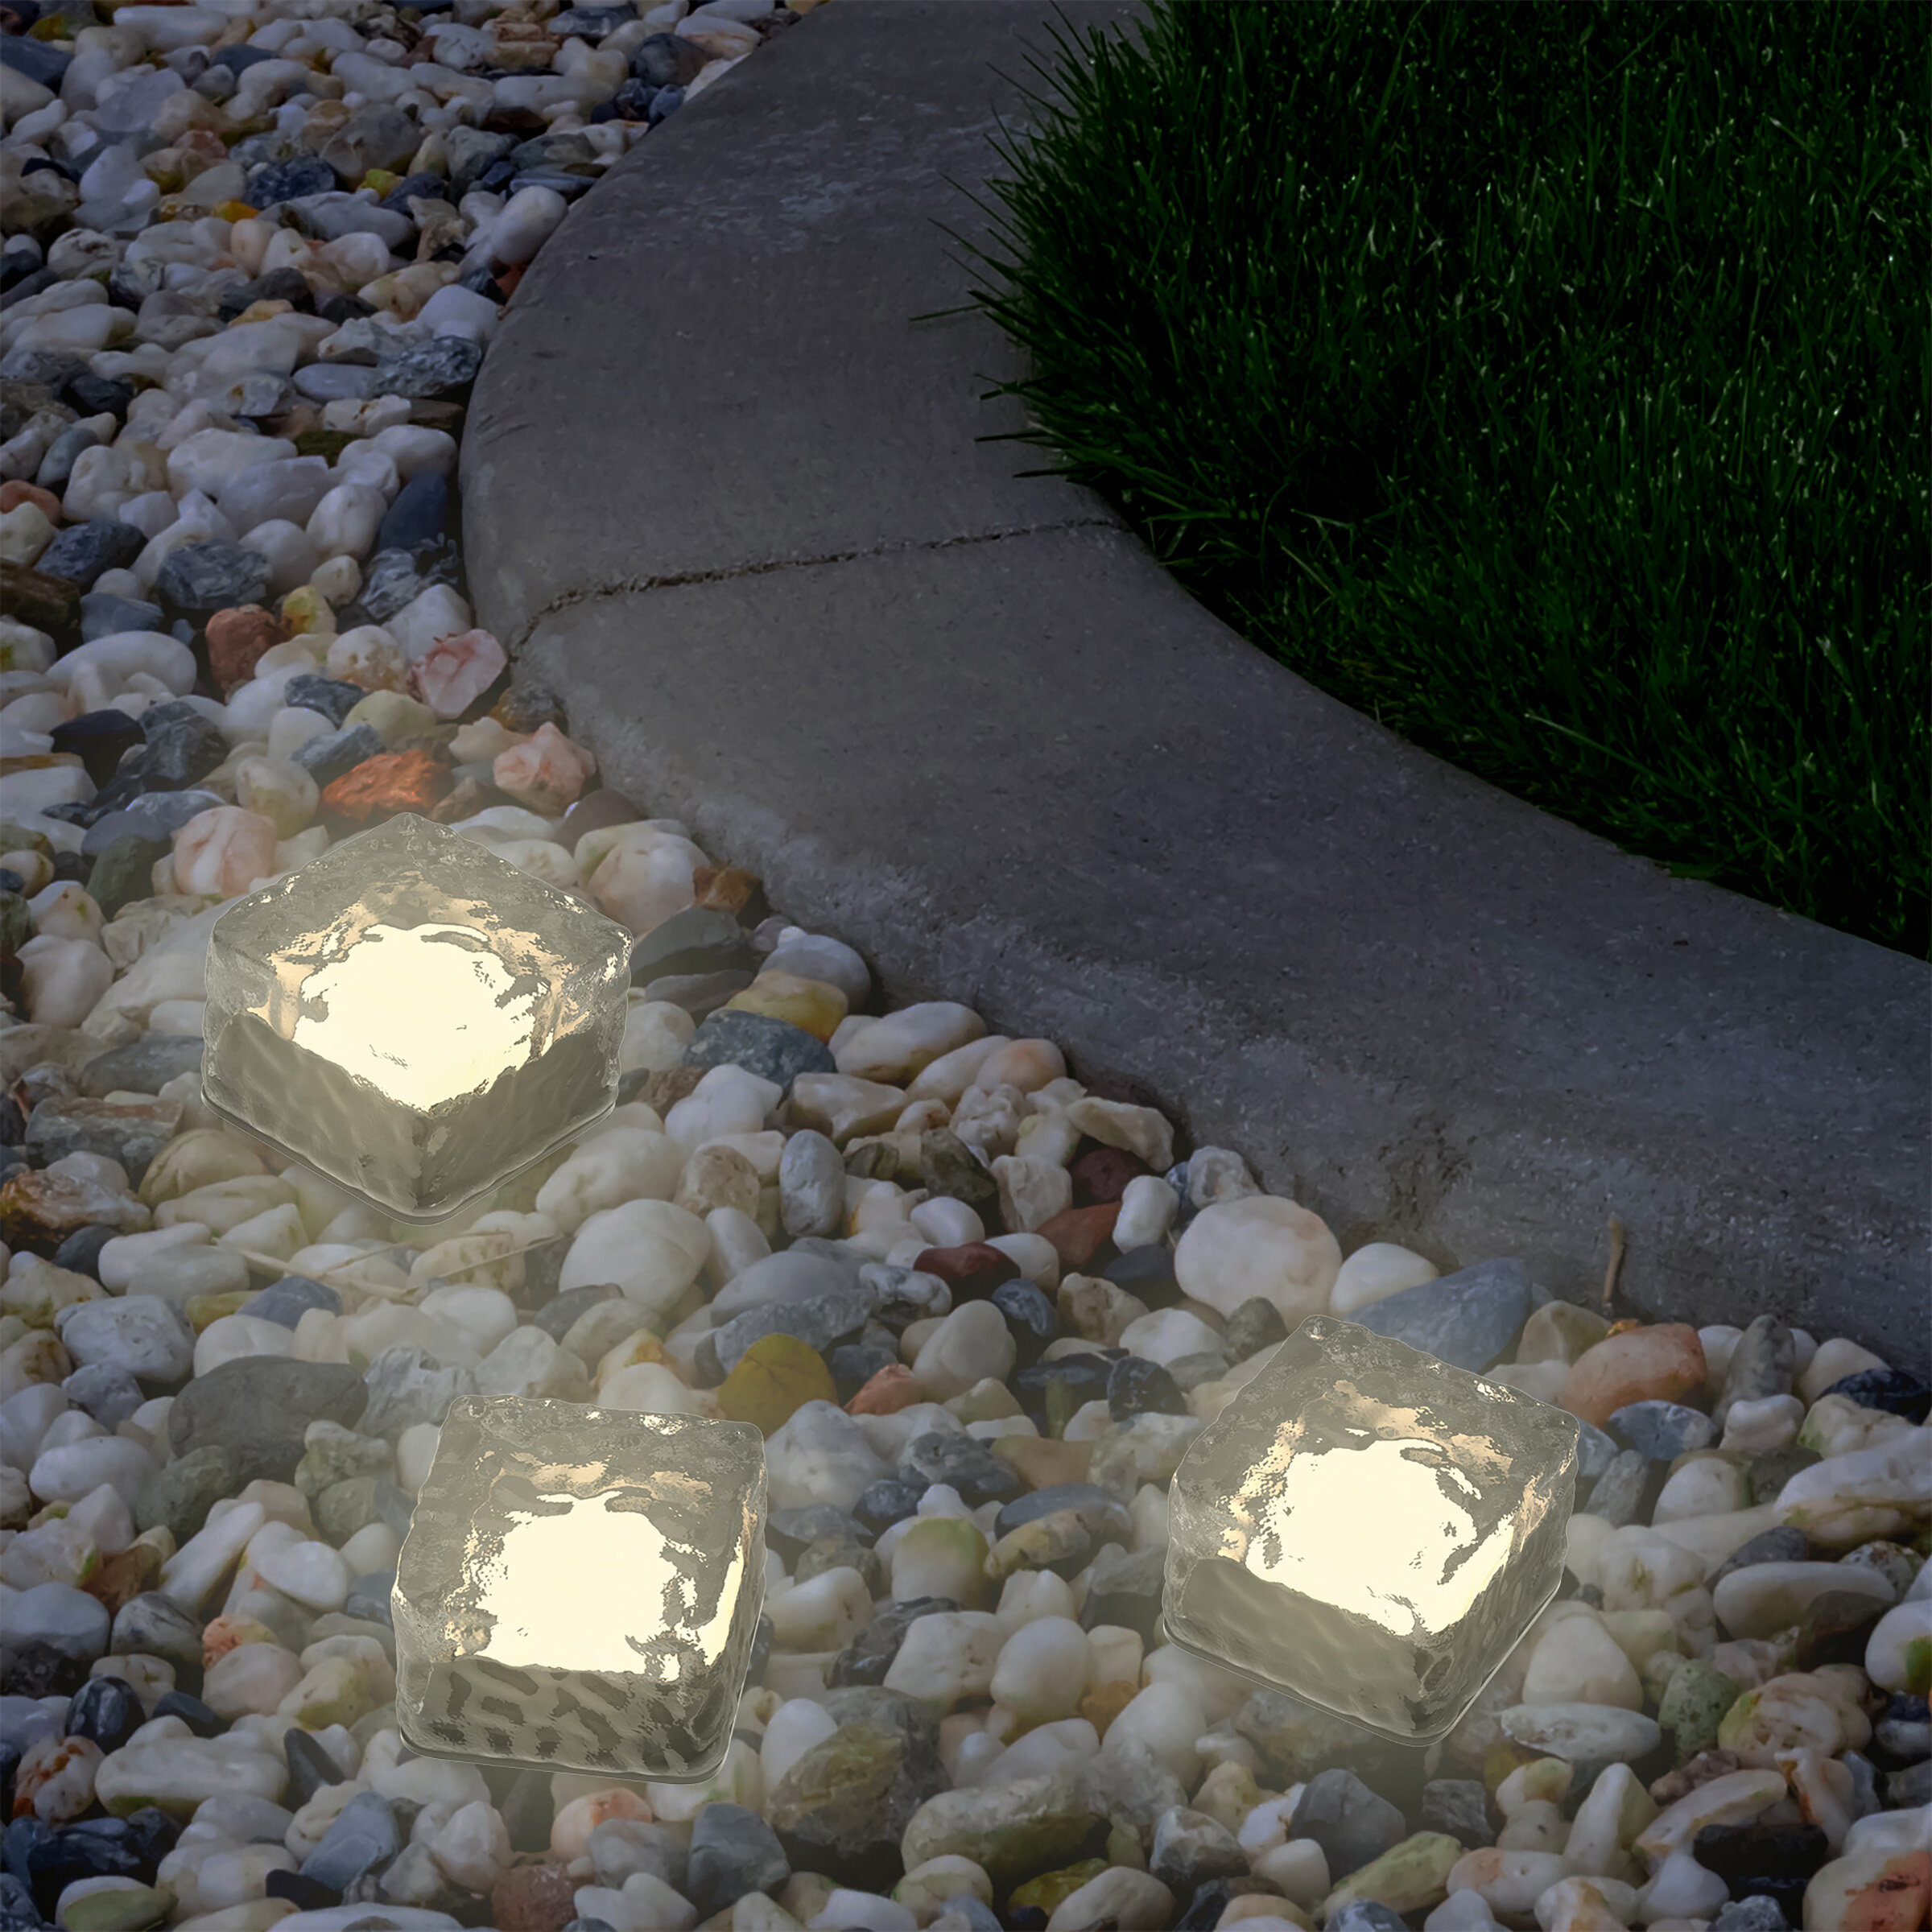 Solar Lamps Outdoor Lighting Solar Powered Led Road Stud Light Pebbles Decorative Stones Landscape Lighting Waterproof For Outdoor Patio Lawn Garden Yard